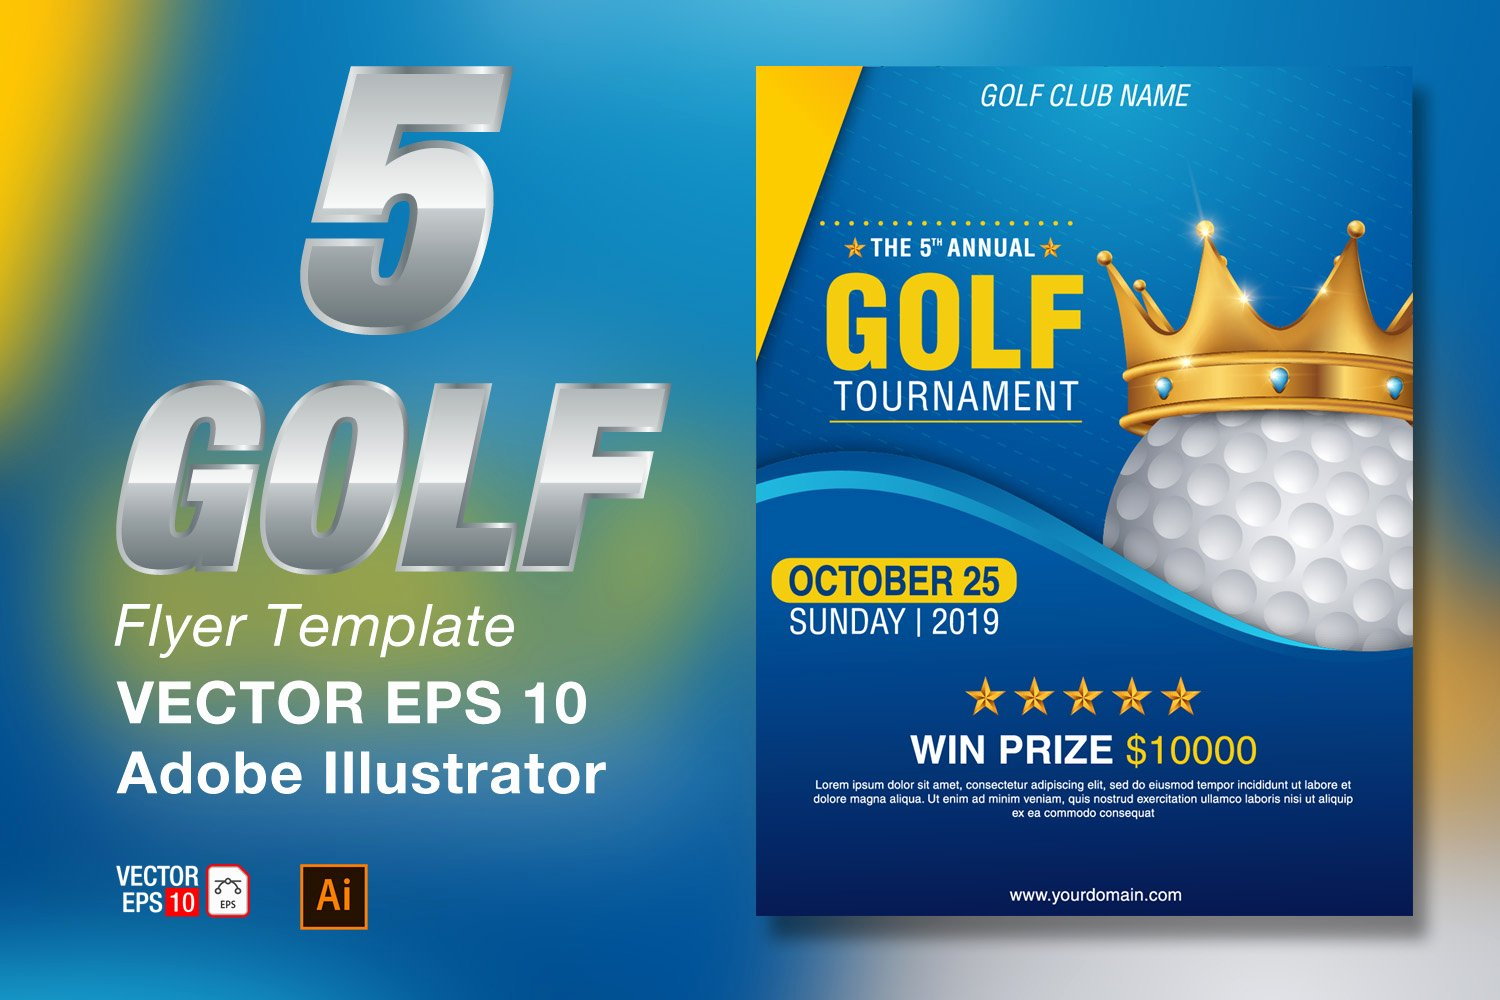 Golf Outing Flyer Template Beautiful Golf tournament Flyer Template